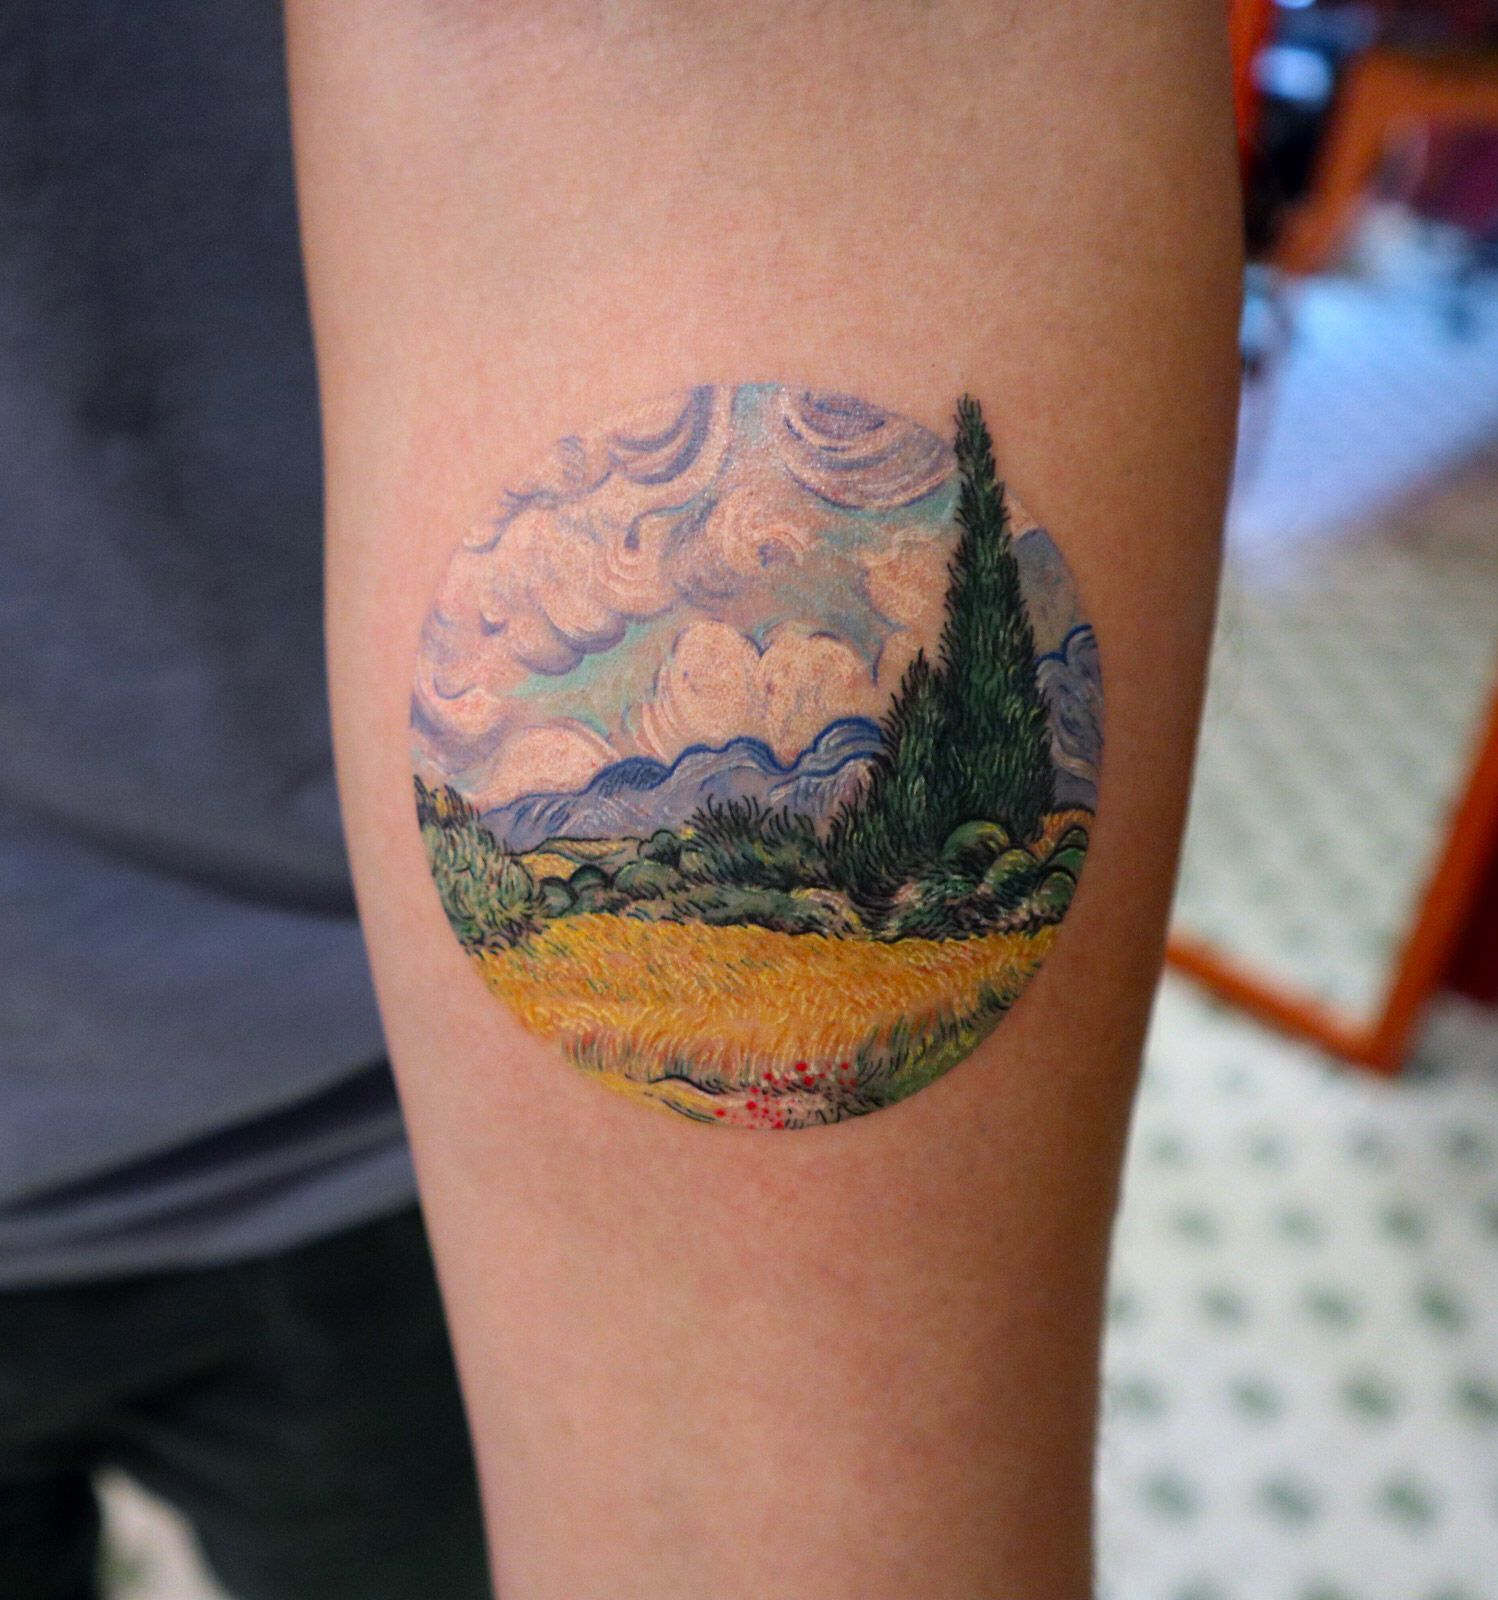 Photo of Perfectly Round Tattoos by Eva Encompass Miniature Worlds Inspired by Art History